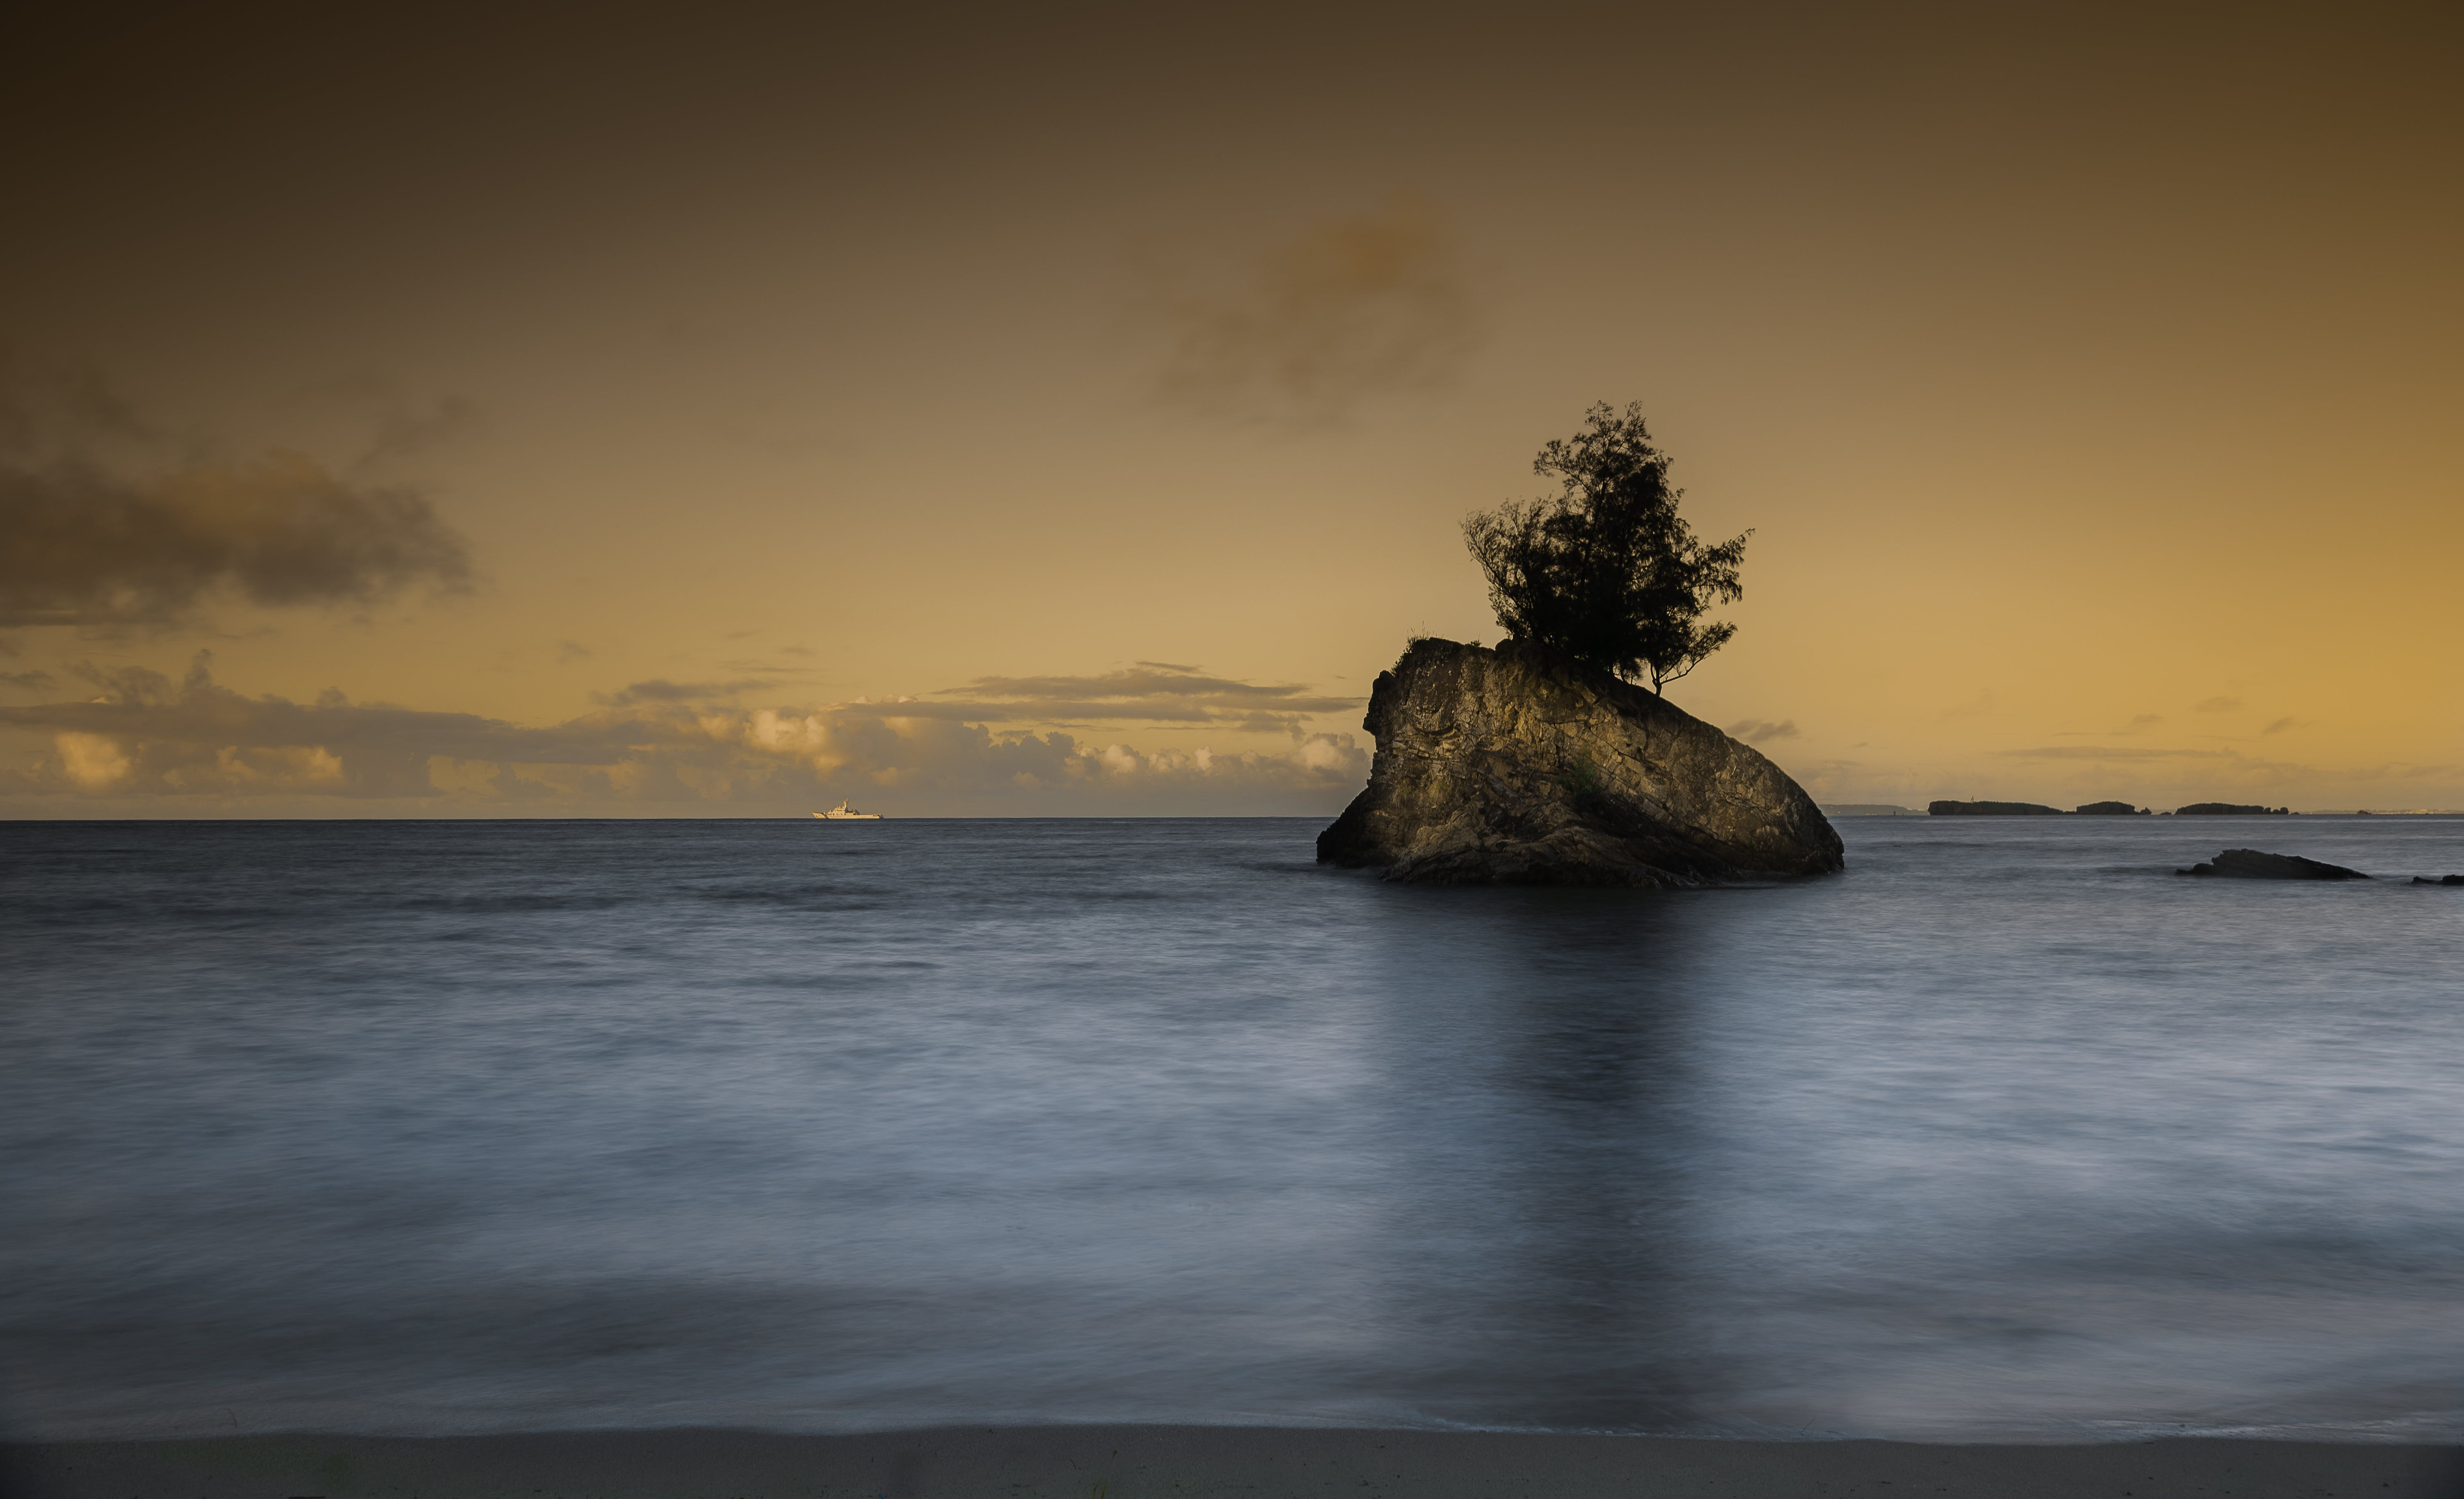 Brown Rock With Tree in the Middle of Ocean